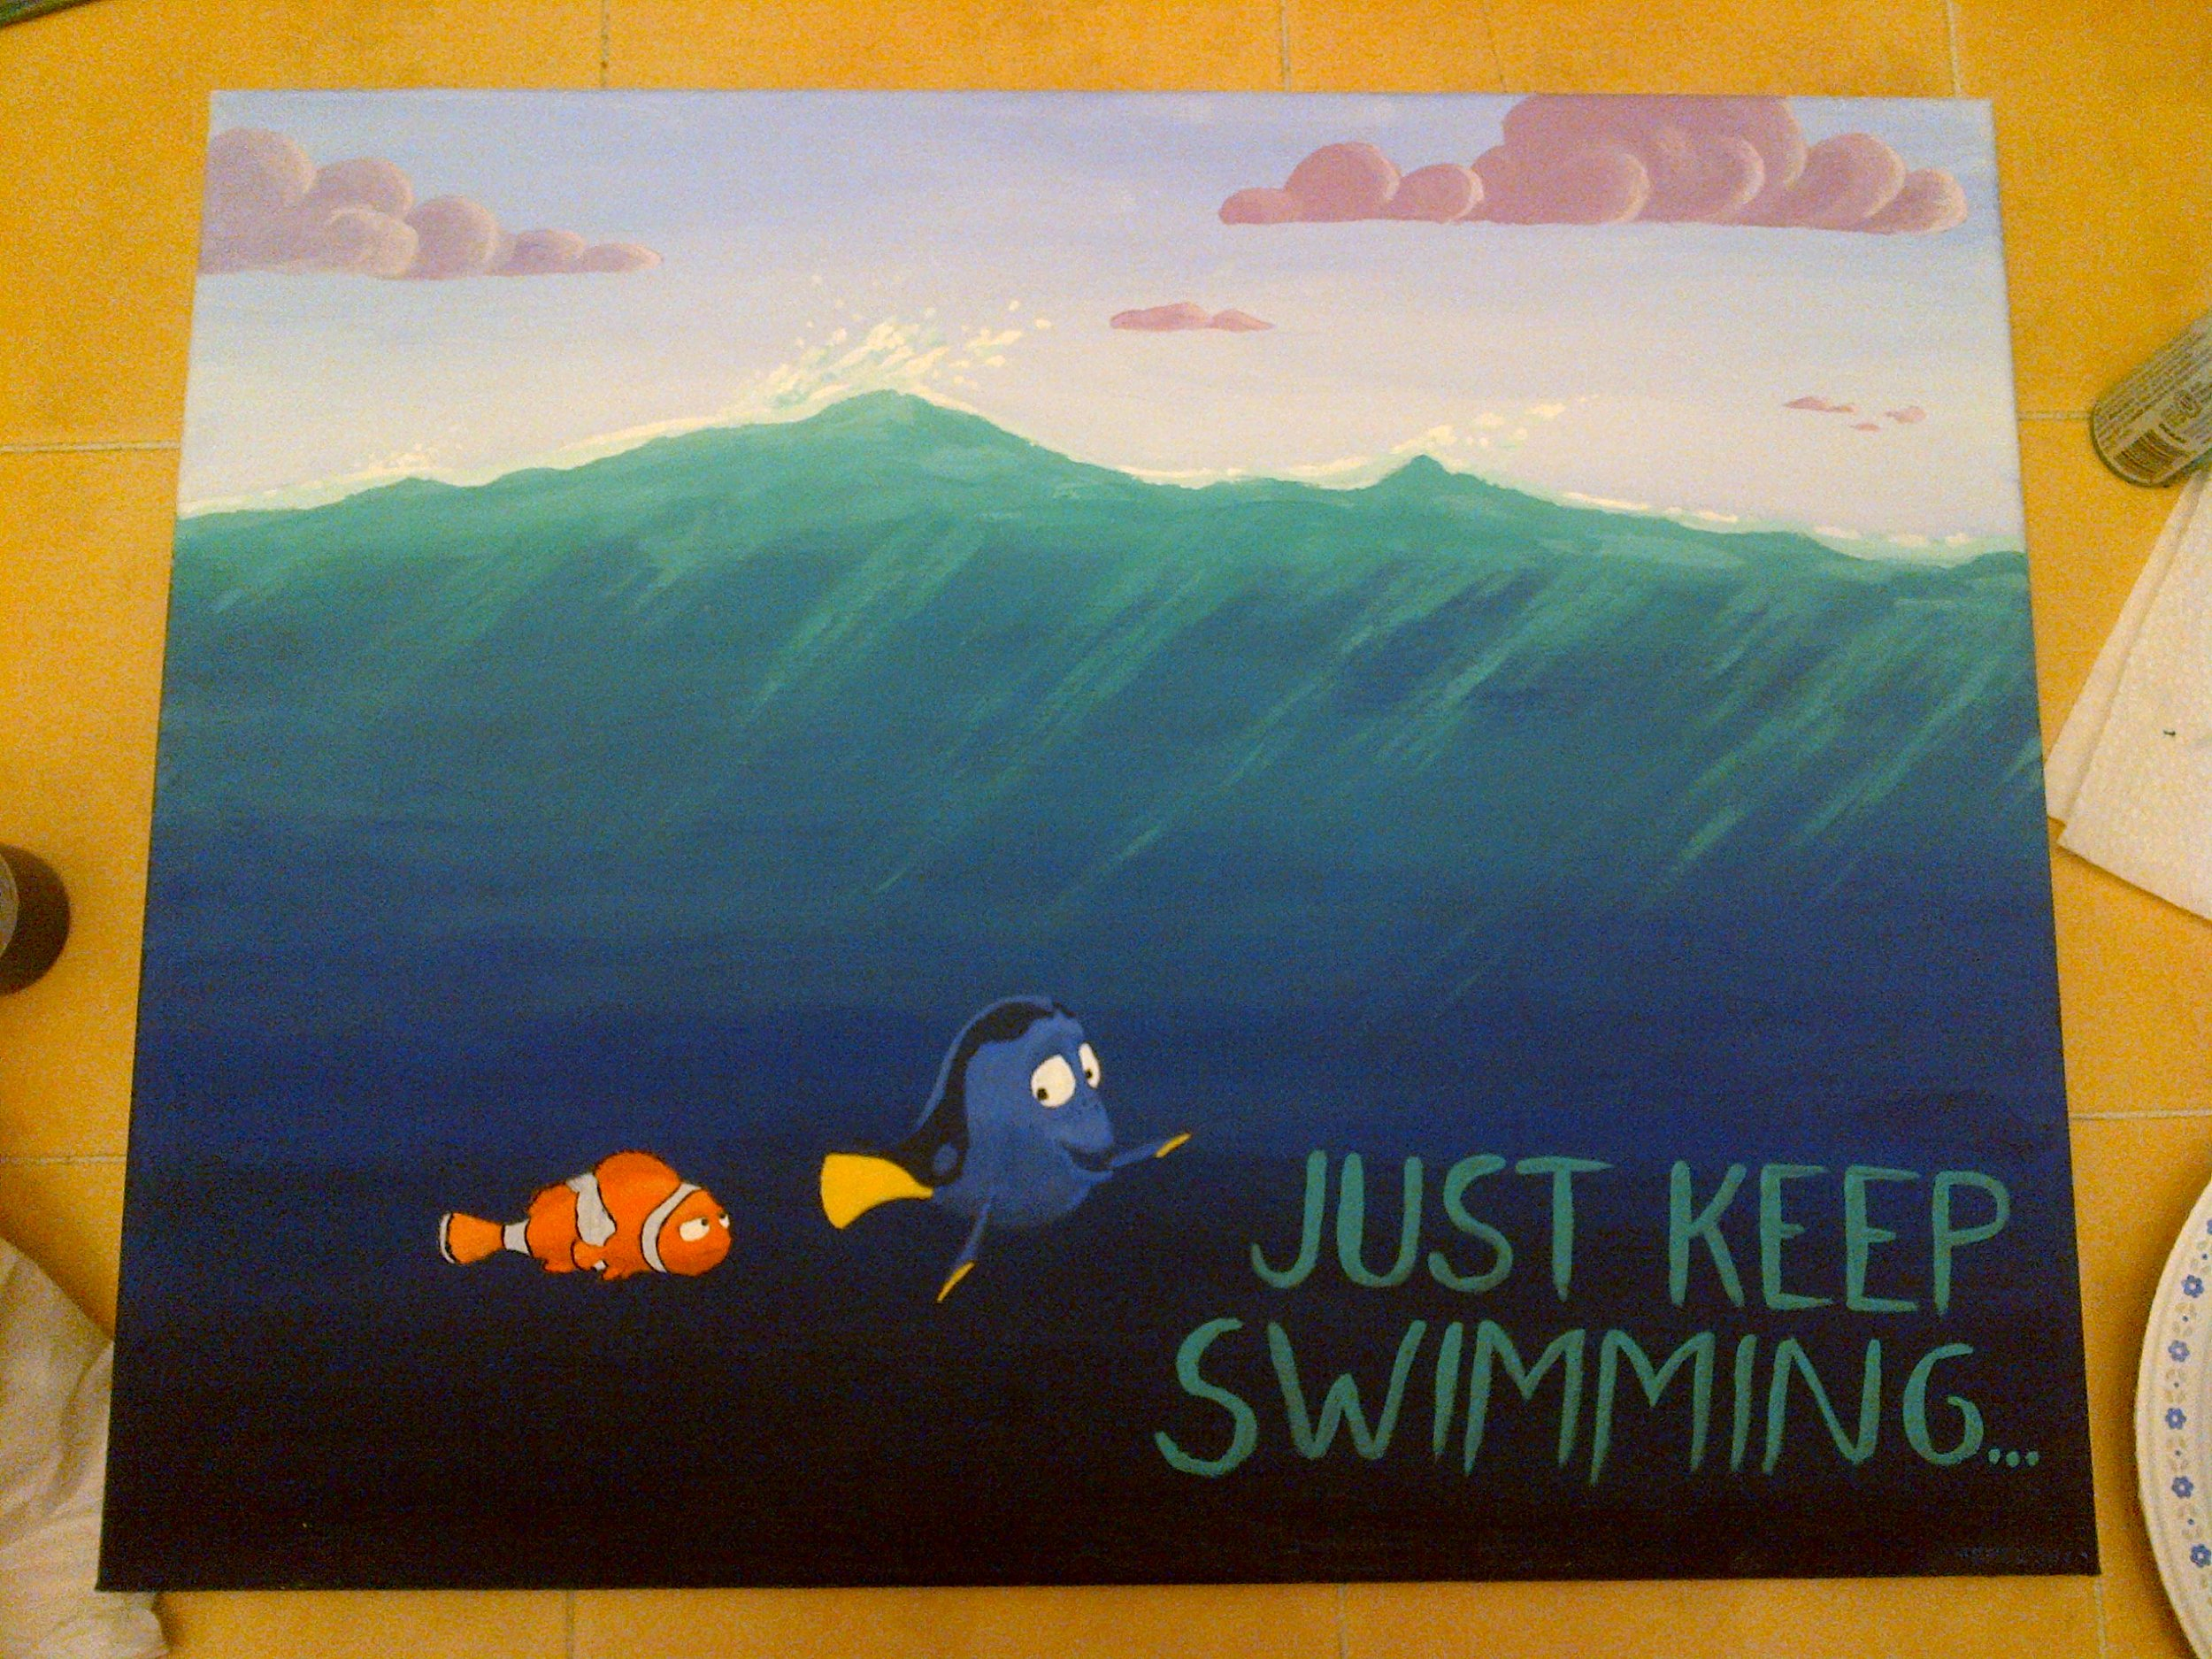 Then, I added shading to the fish and a suitable movie quote to make the painting vaguely inspirational. And that was it! It was started and finished in 5 nights, a total of about 8 hours of work. It turned out decently, though nowhere near perfect. (The fact that I can see the imperfection in the art is probably a good sign that I'll try painting more in the near future.)